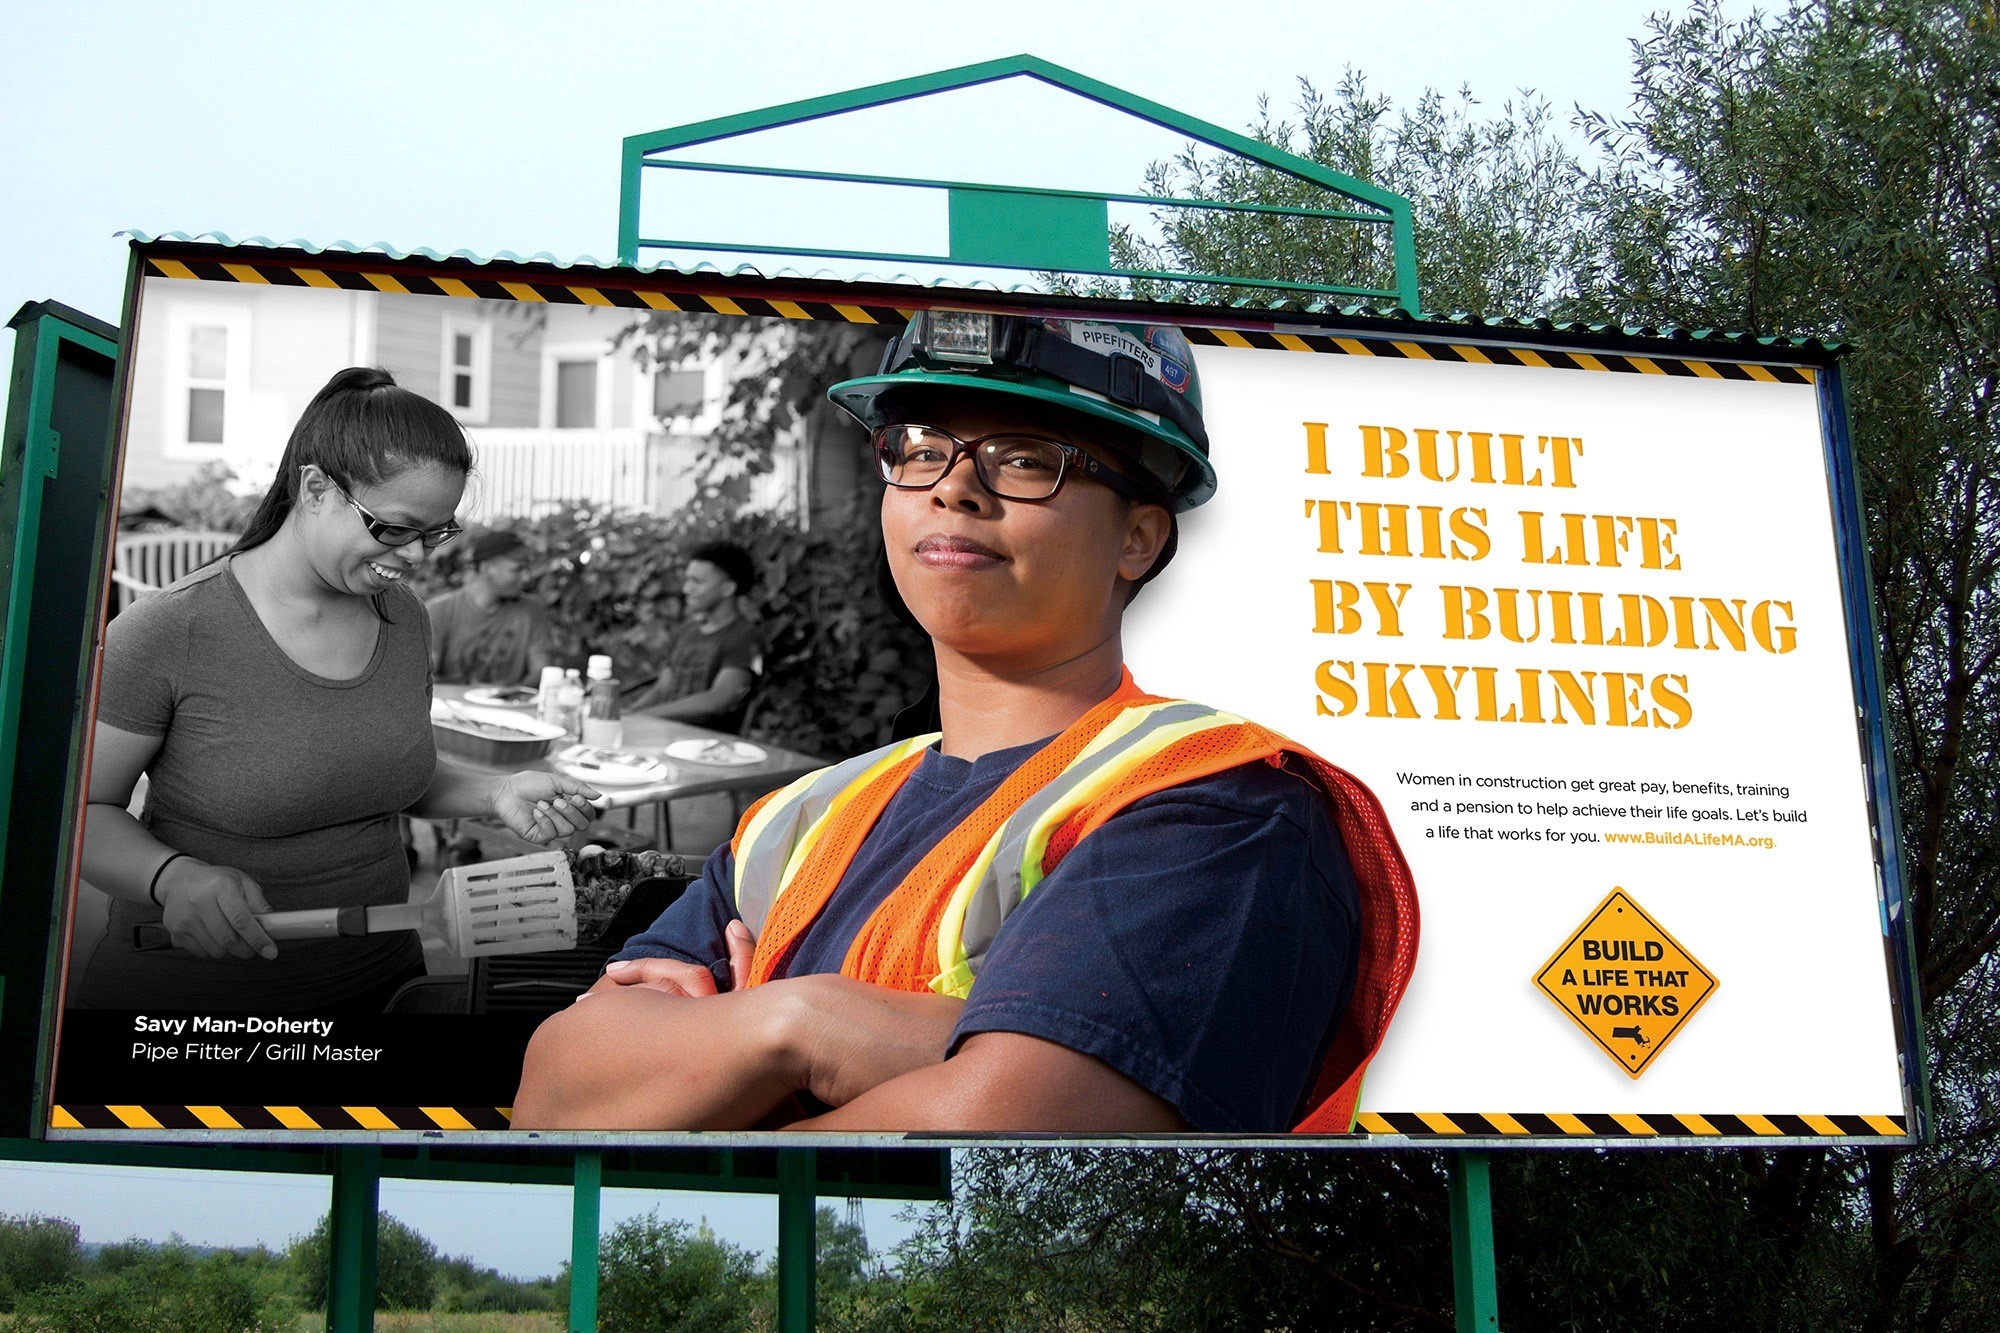 A billboard displays the Build A Life That Works campaign